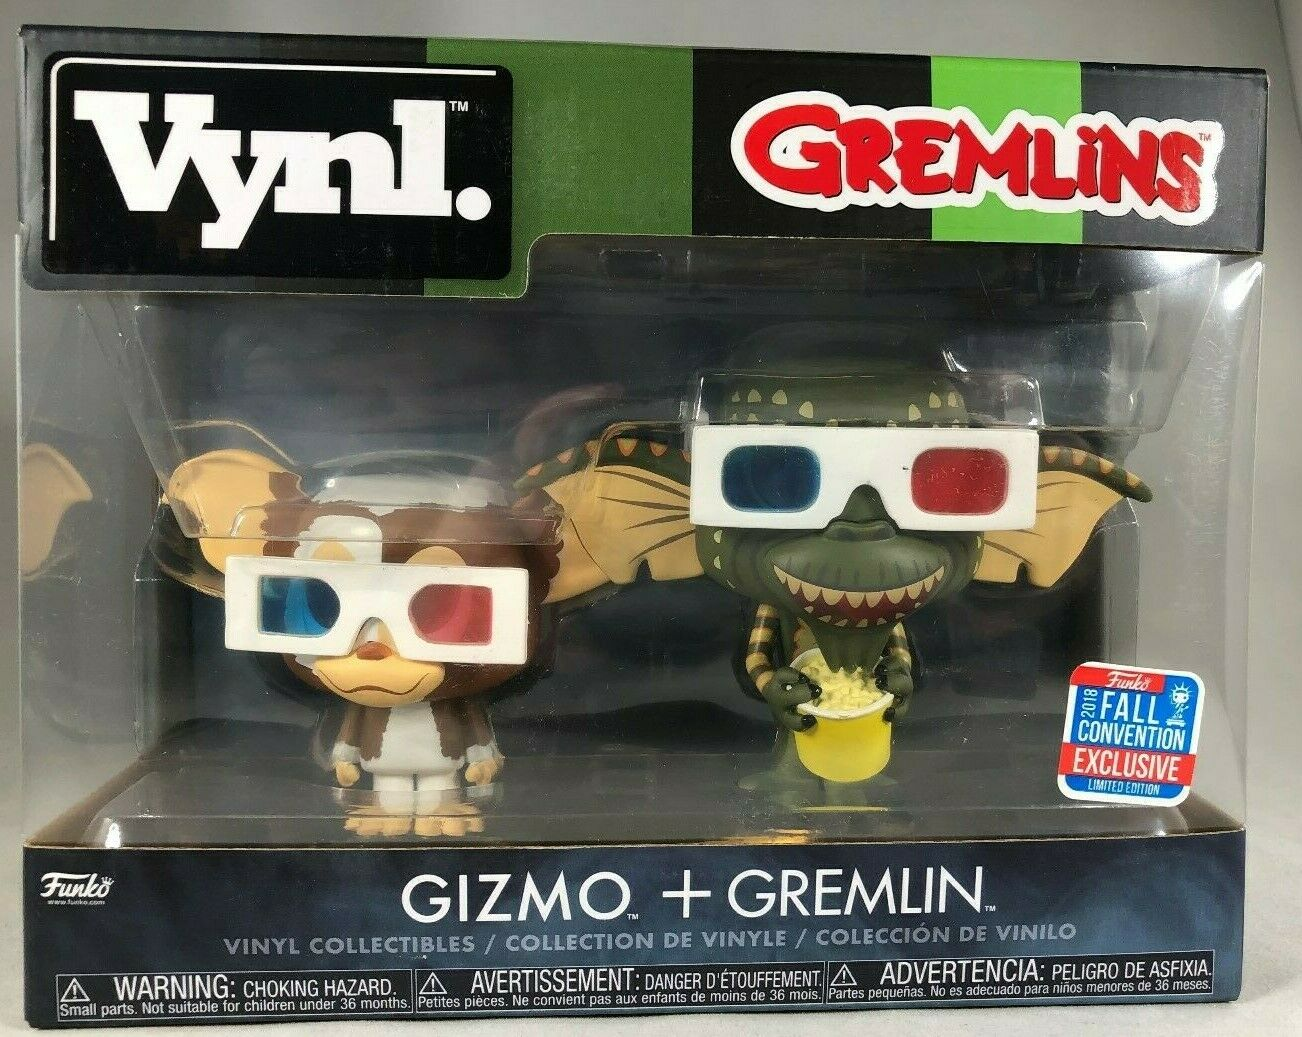 FUNKO VYNL GREMLINS GIZMO + GREMLIN 2 PACK 2018 FALL CONVENT